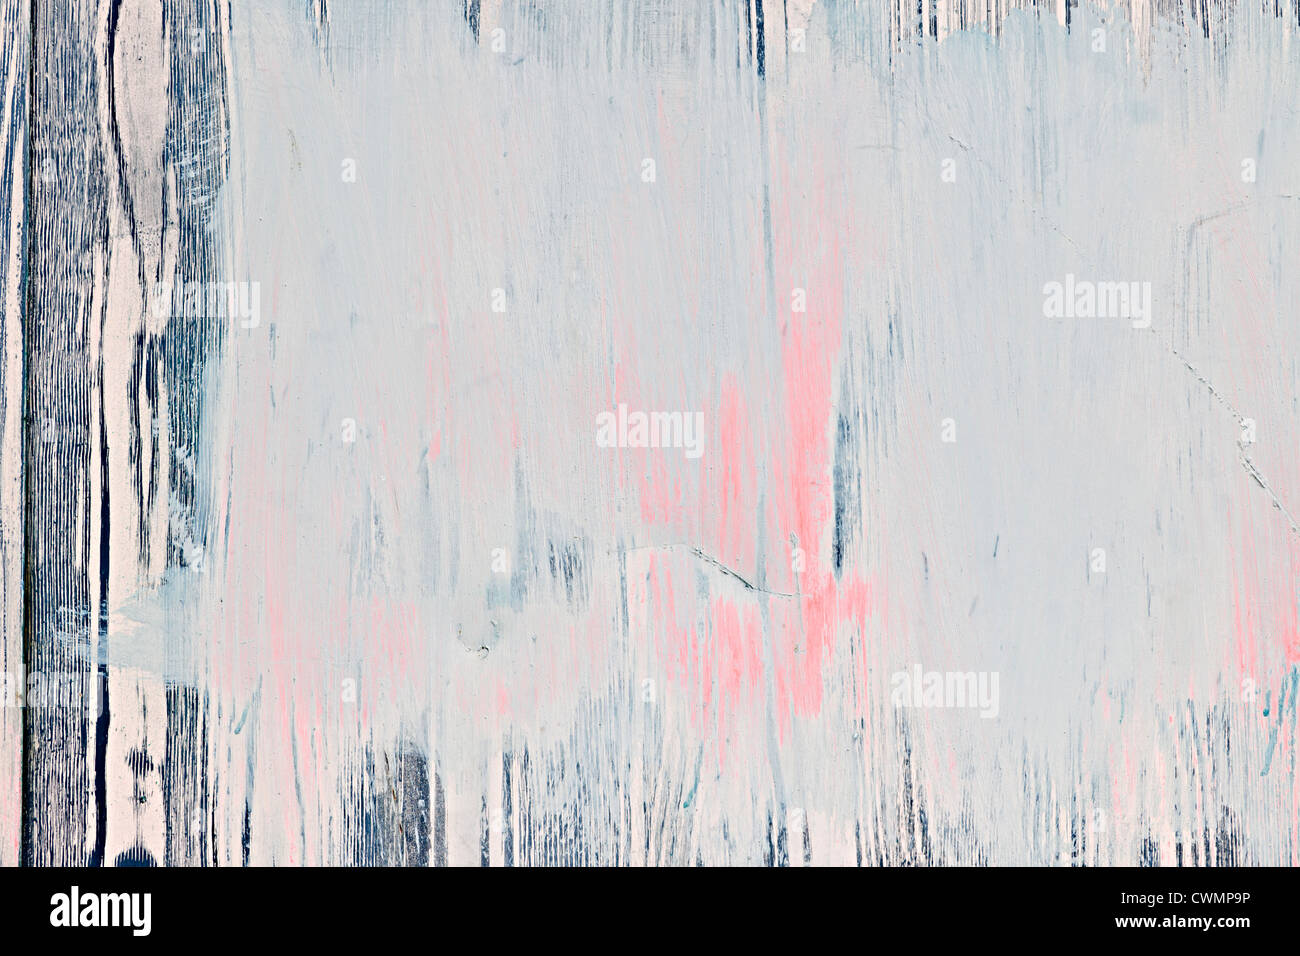 Background of old wood wall with peeling paint - Stock Image